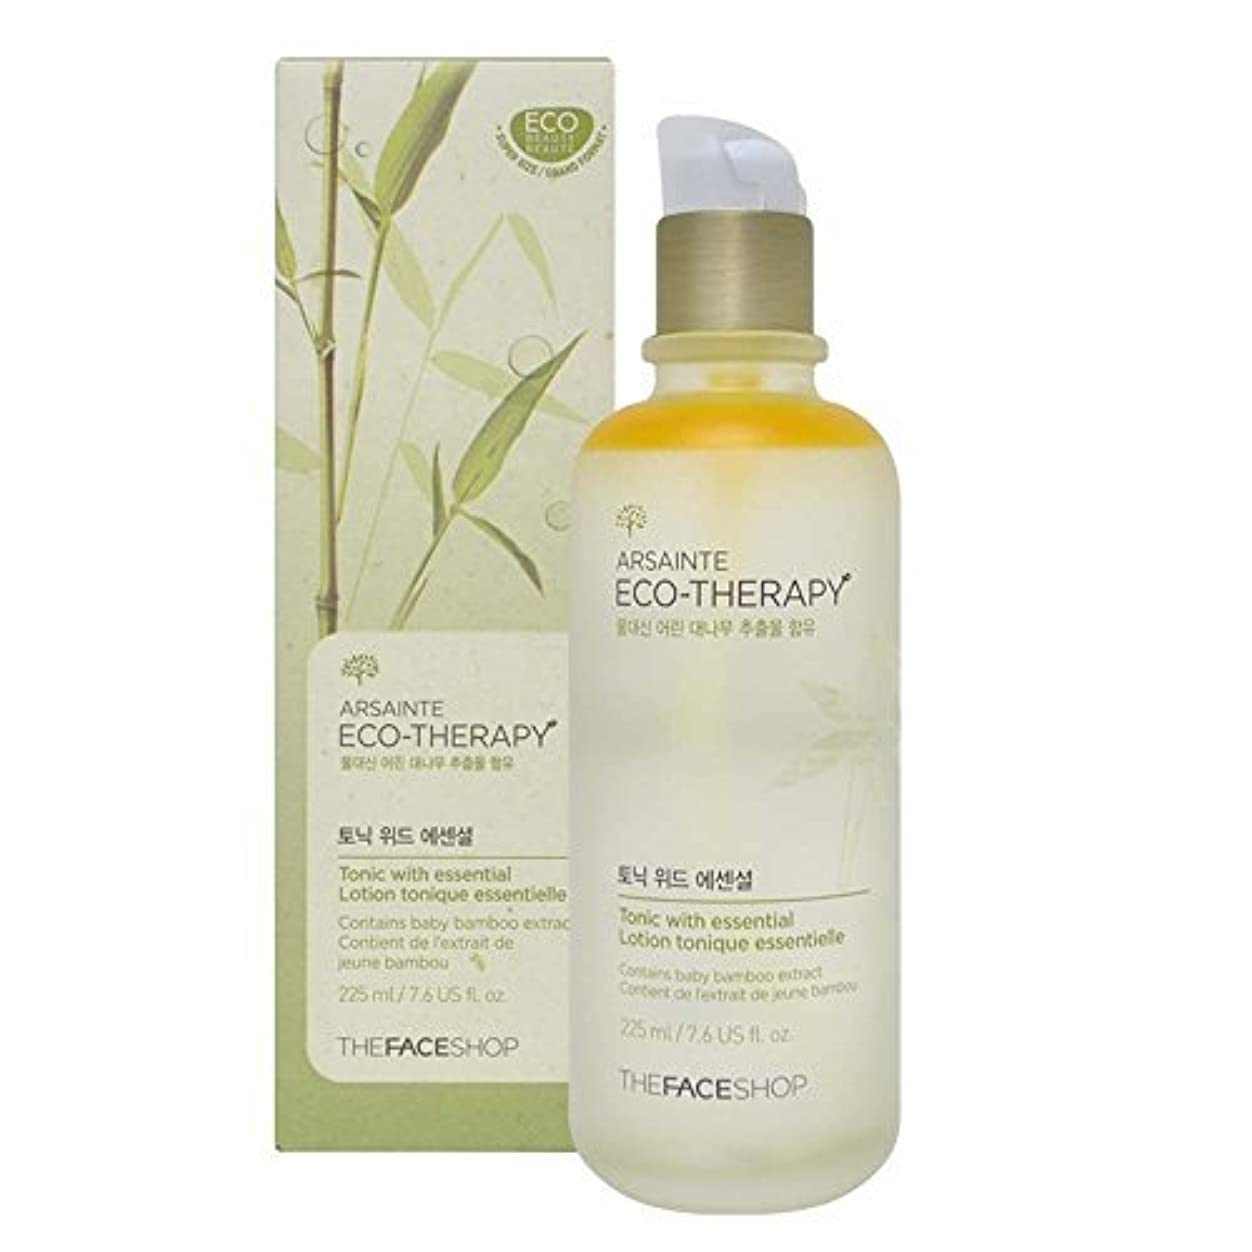 The Face shop Arsainte Ecotheraphy Tonic with essential Big Size 225ml [並行輸入品]